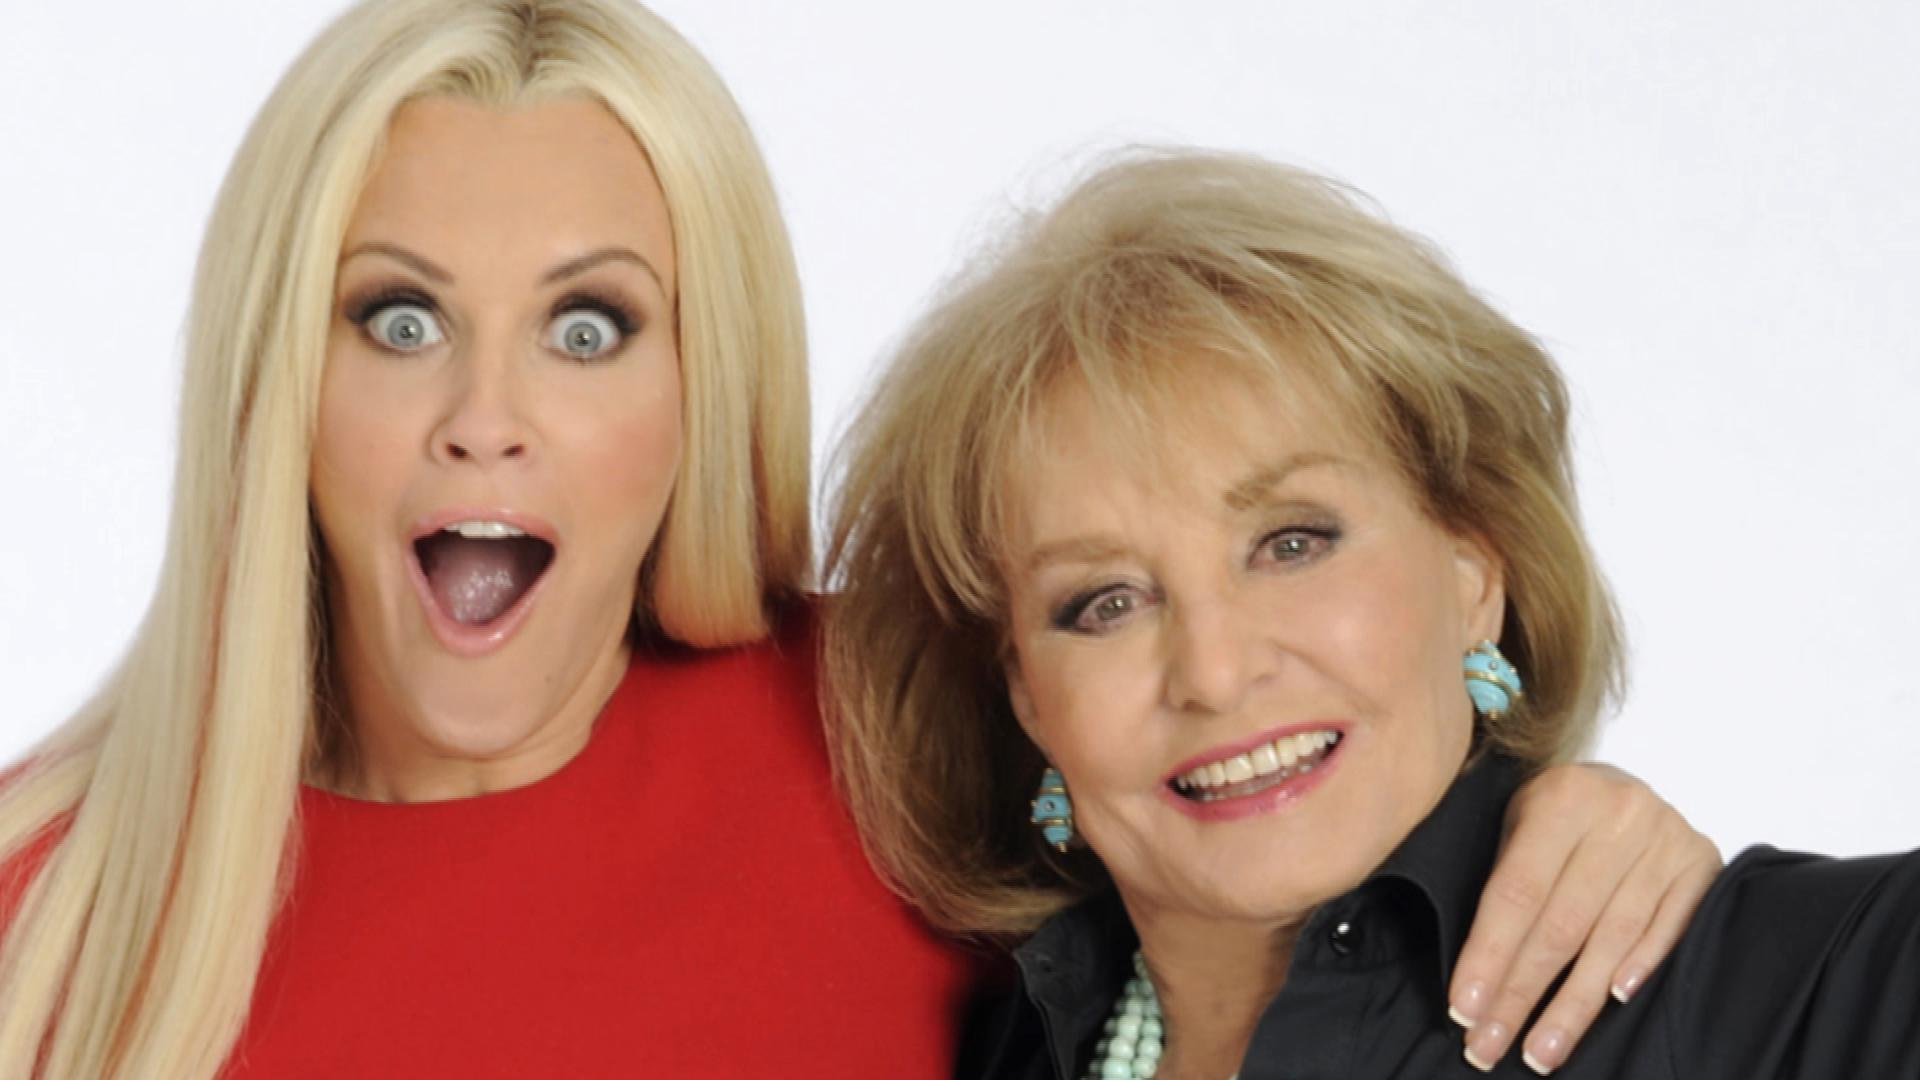 Jenny McCarthy hugging Barbara Walters and giving weird expression